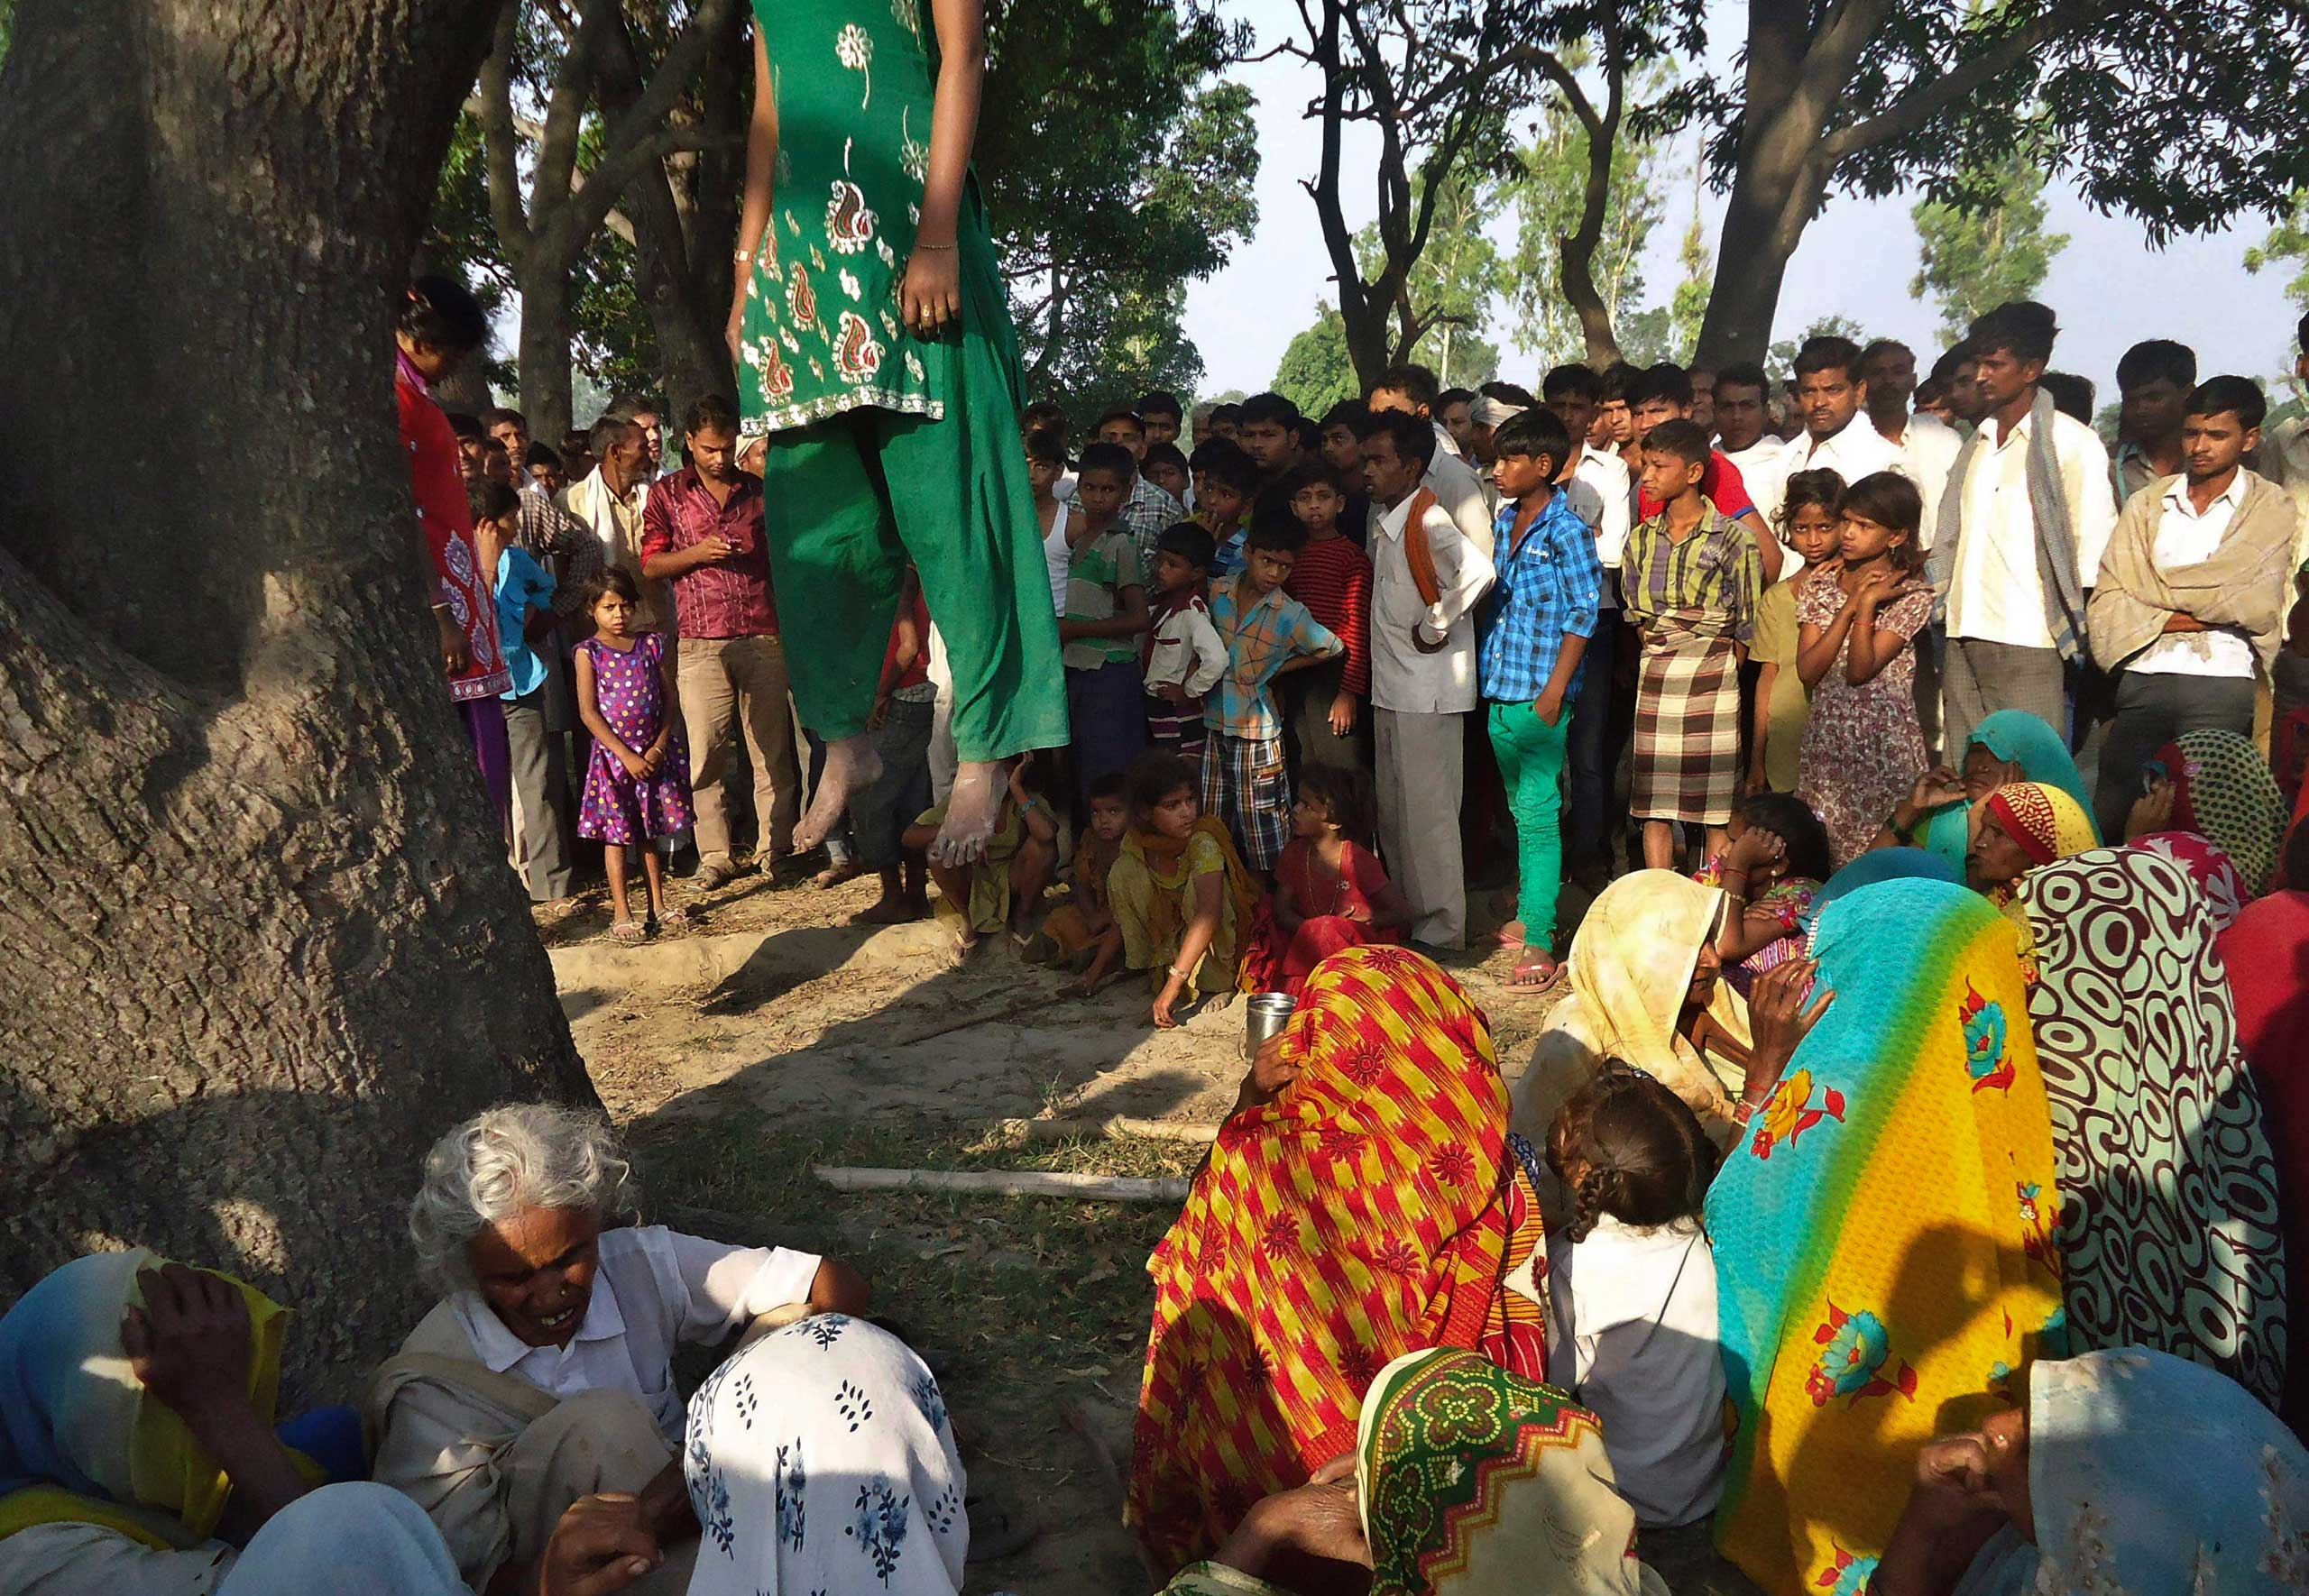 Indian villagers gather around the bodies of two teenage sisters hanging from a tree in Katra village in Uttar Pradesh state, India. The teenage sisters in rural India were raped and killed by attackers who hung their bodies from a mango tree, May 28, 2014.